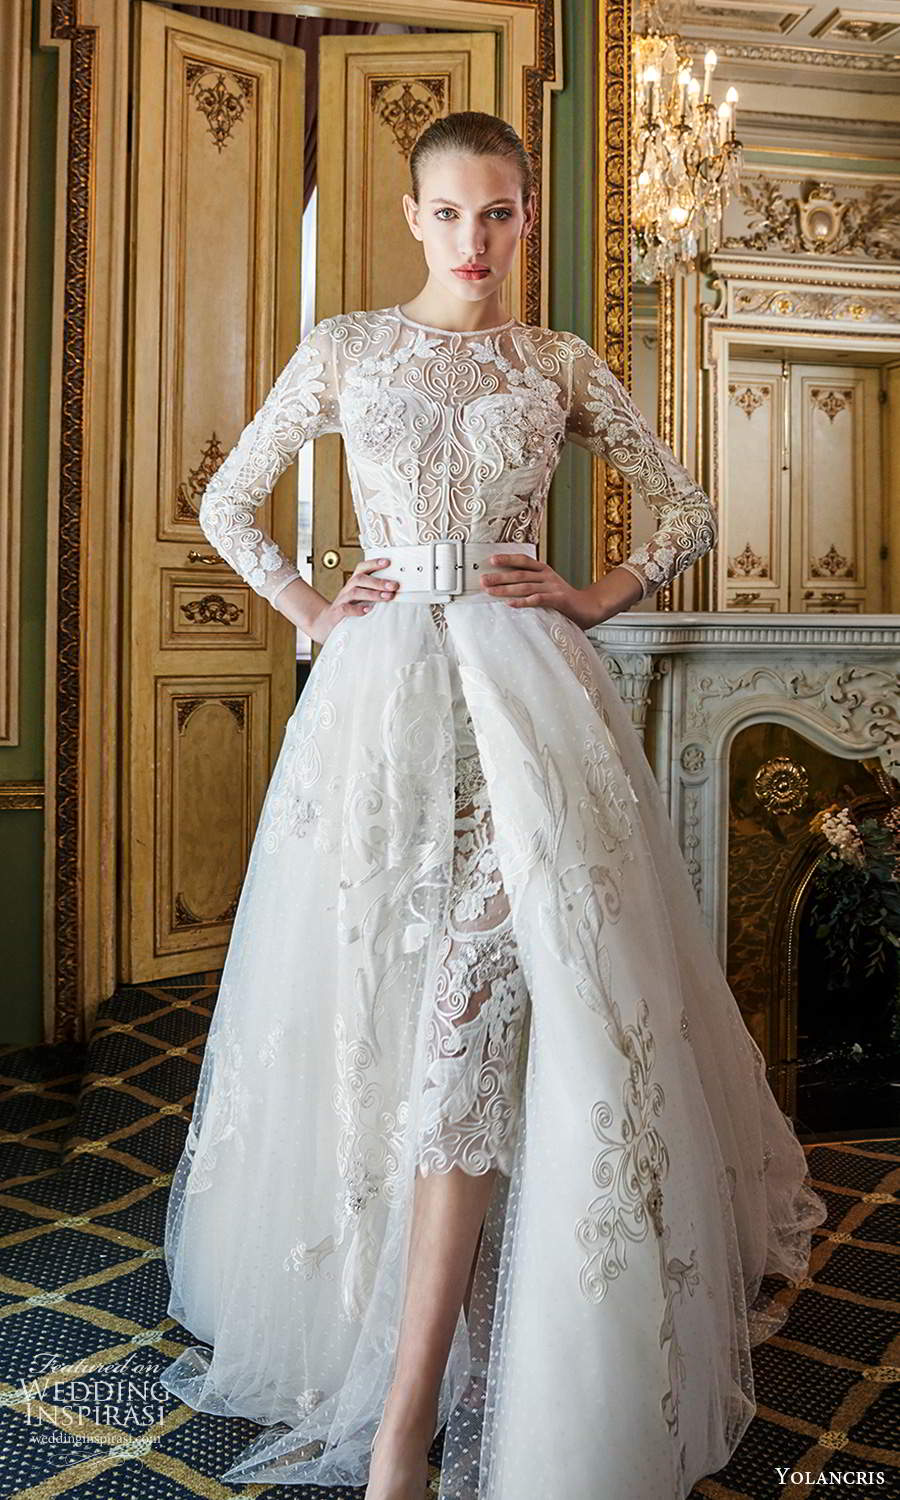 yolancris 2020 bridal couture 3 quarter sleeves jewel neckline fully embellished knee length sheath shift wedding dress a line ball gown overskirt belt chapel train (3) mv